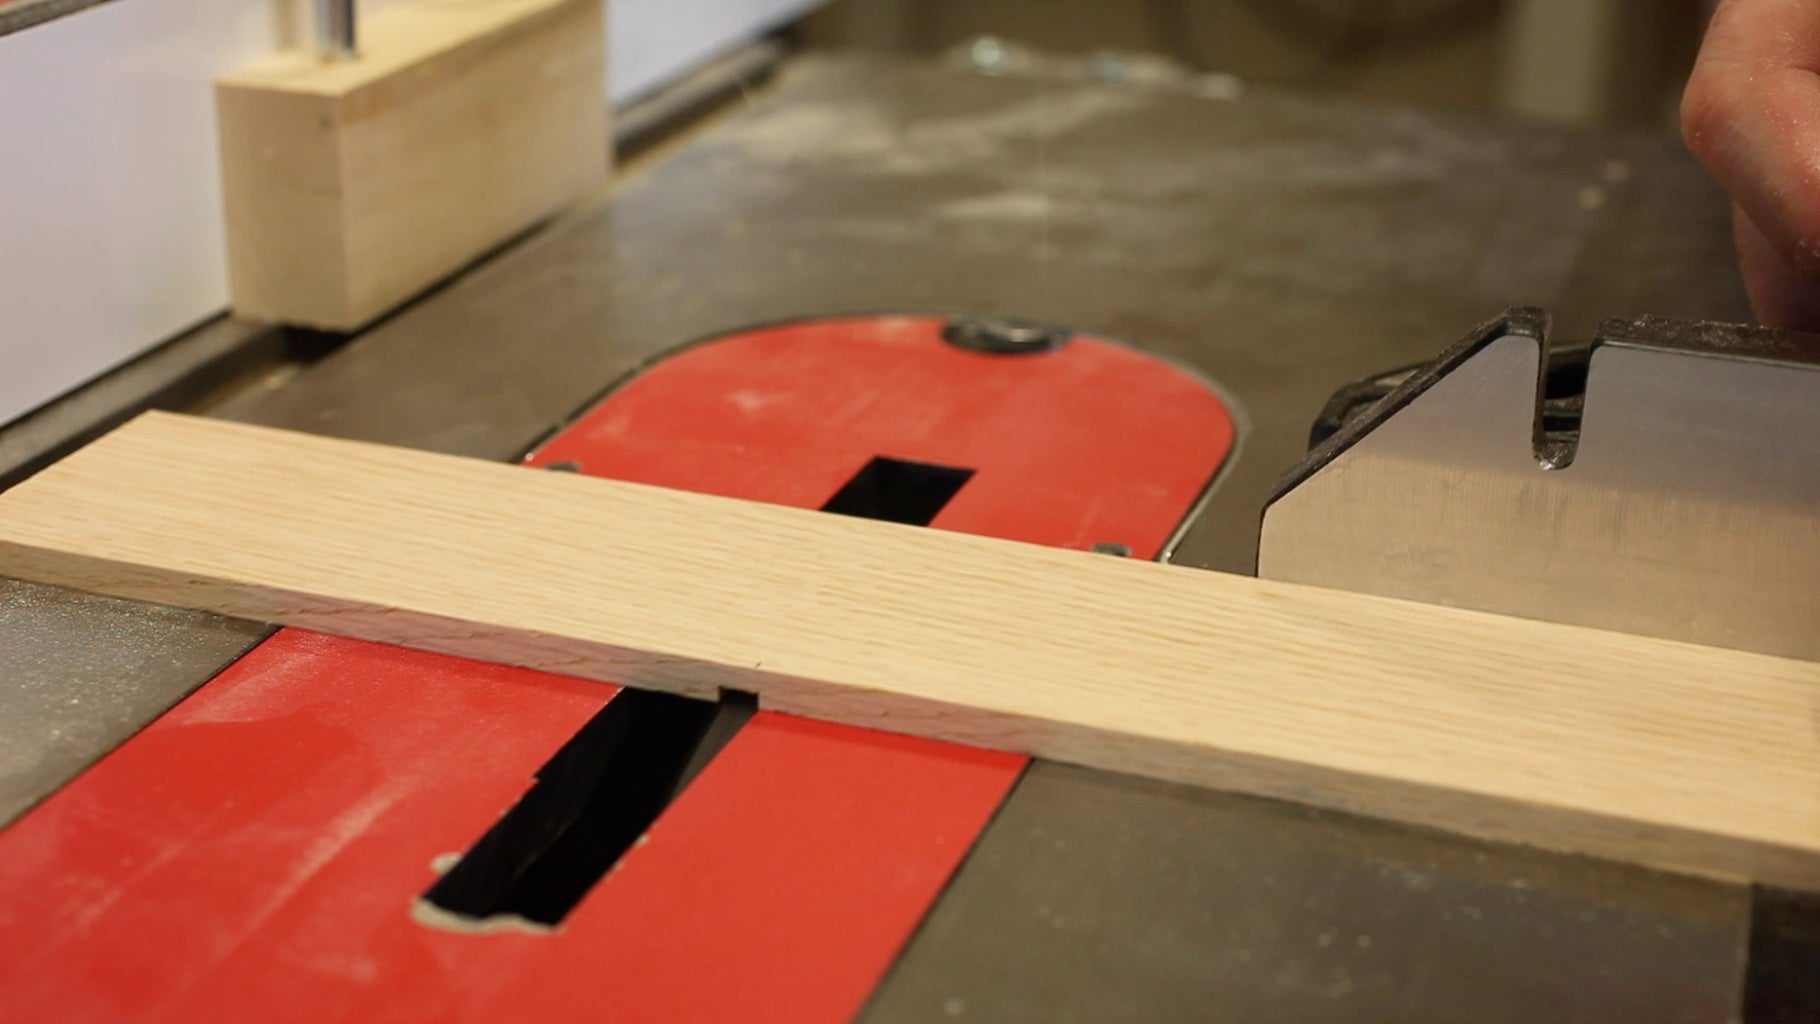 The Rabbets, Dados, and Glue Up